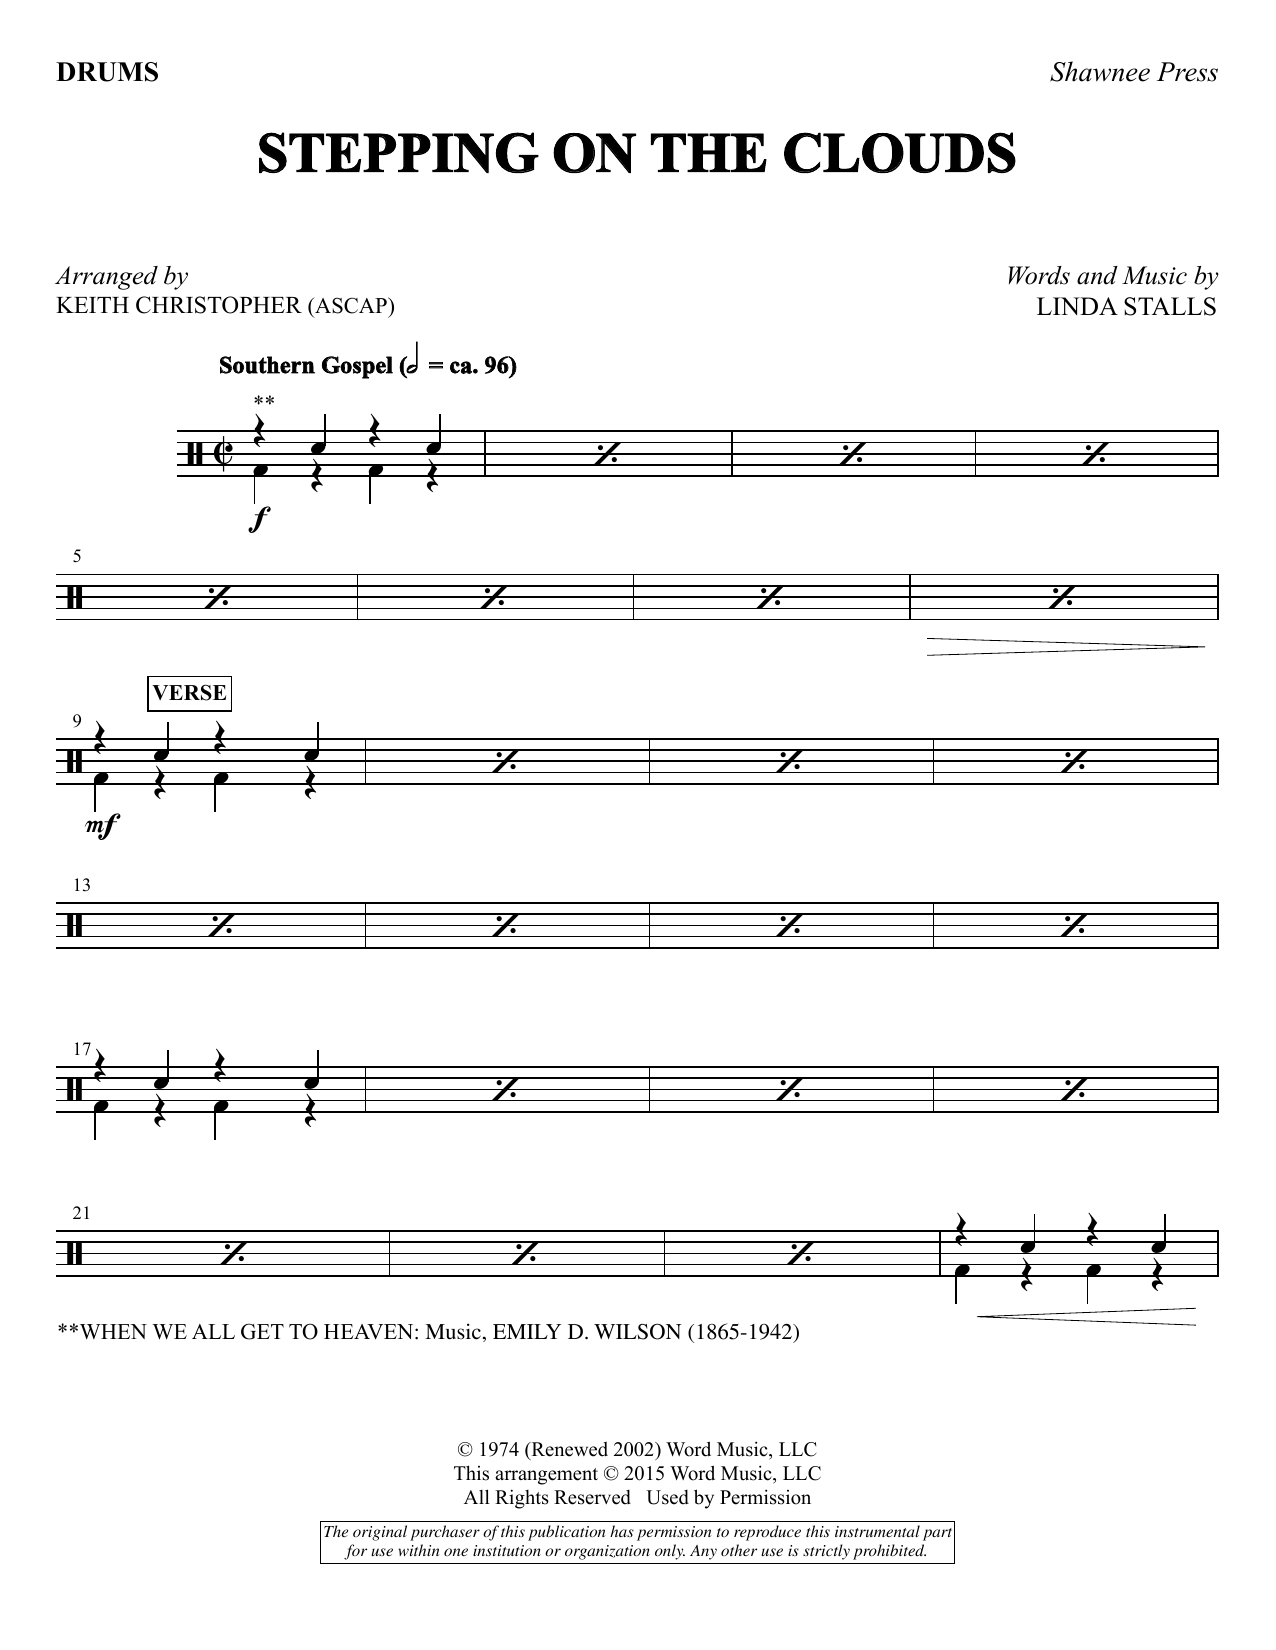 Keith Christopher Stepping on the Clouds - Drums sheet music notes and chords. Download Printable PDF.